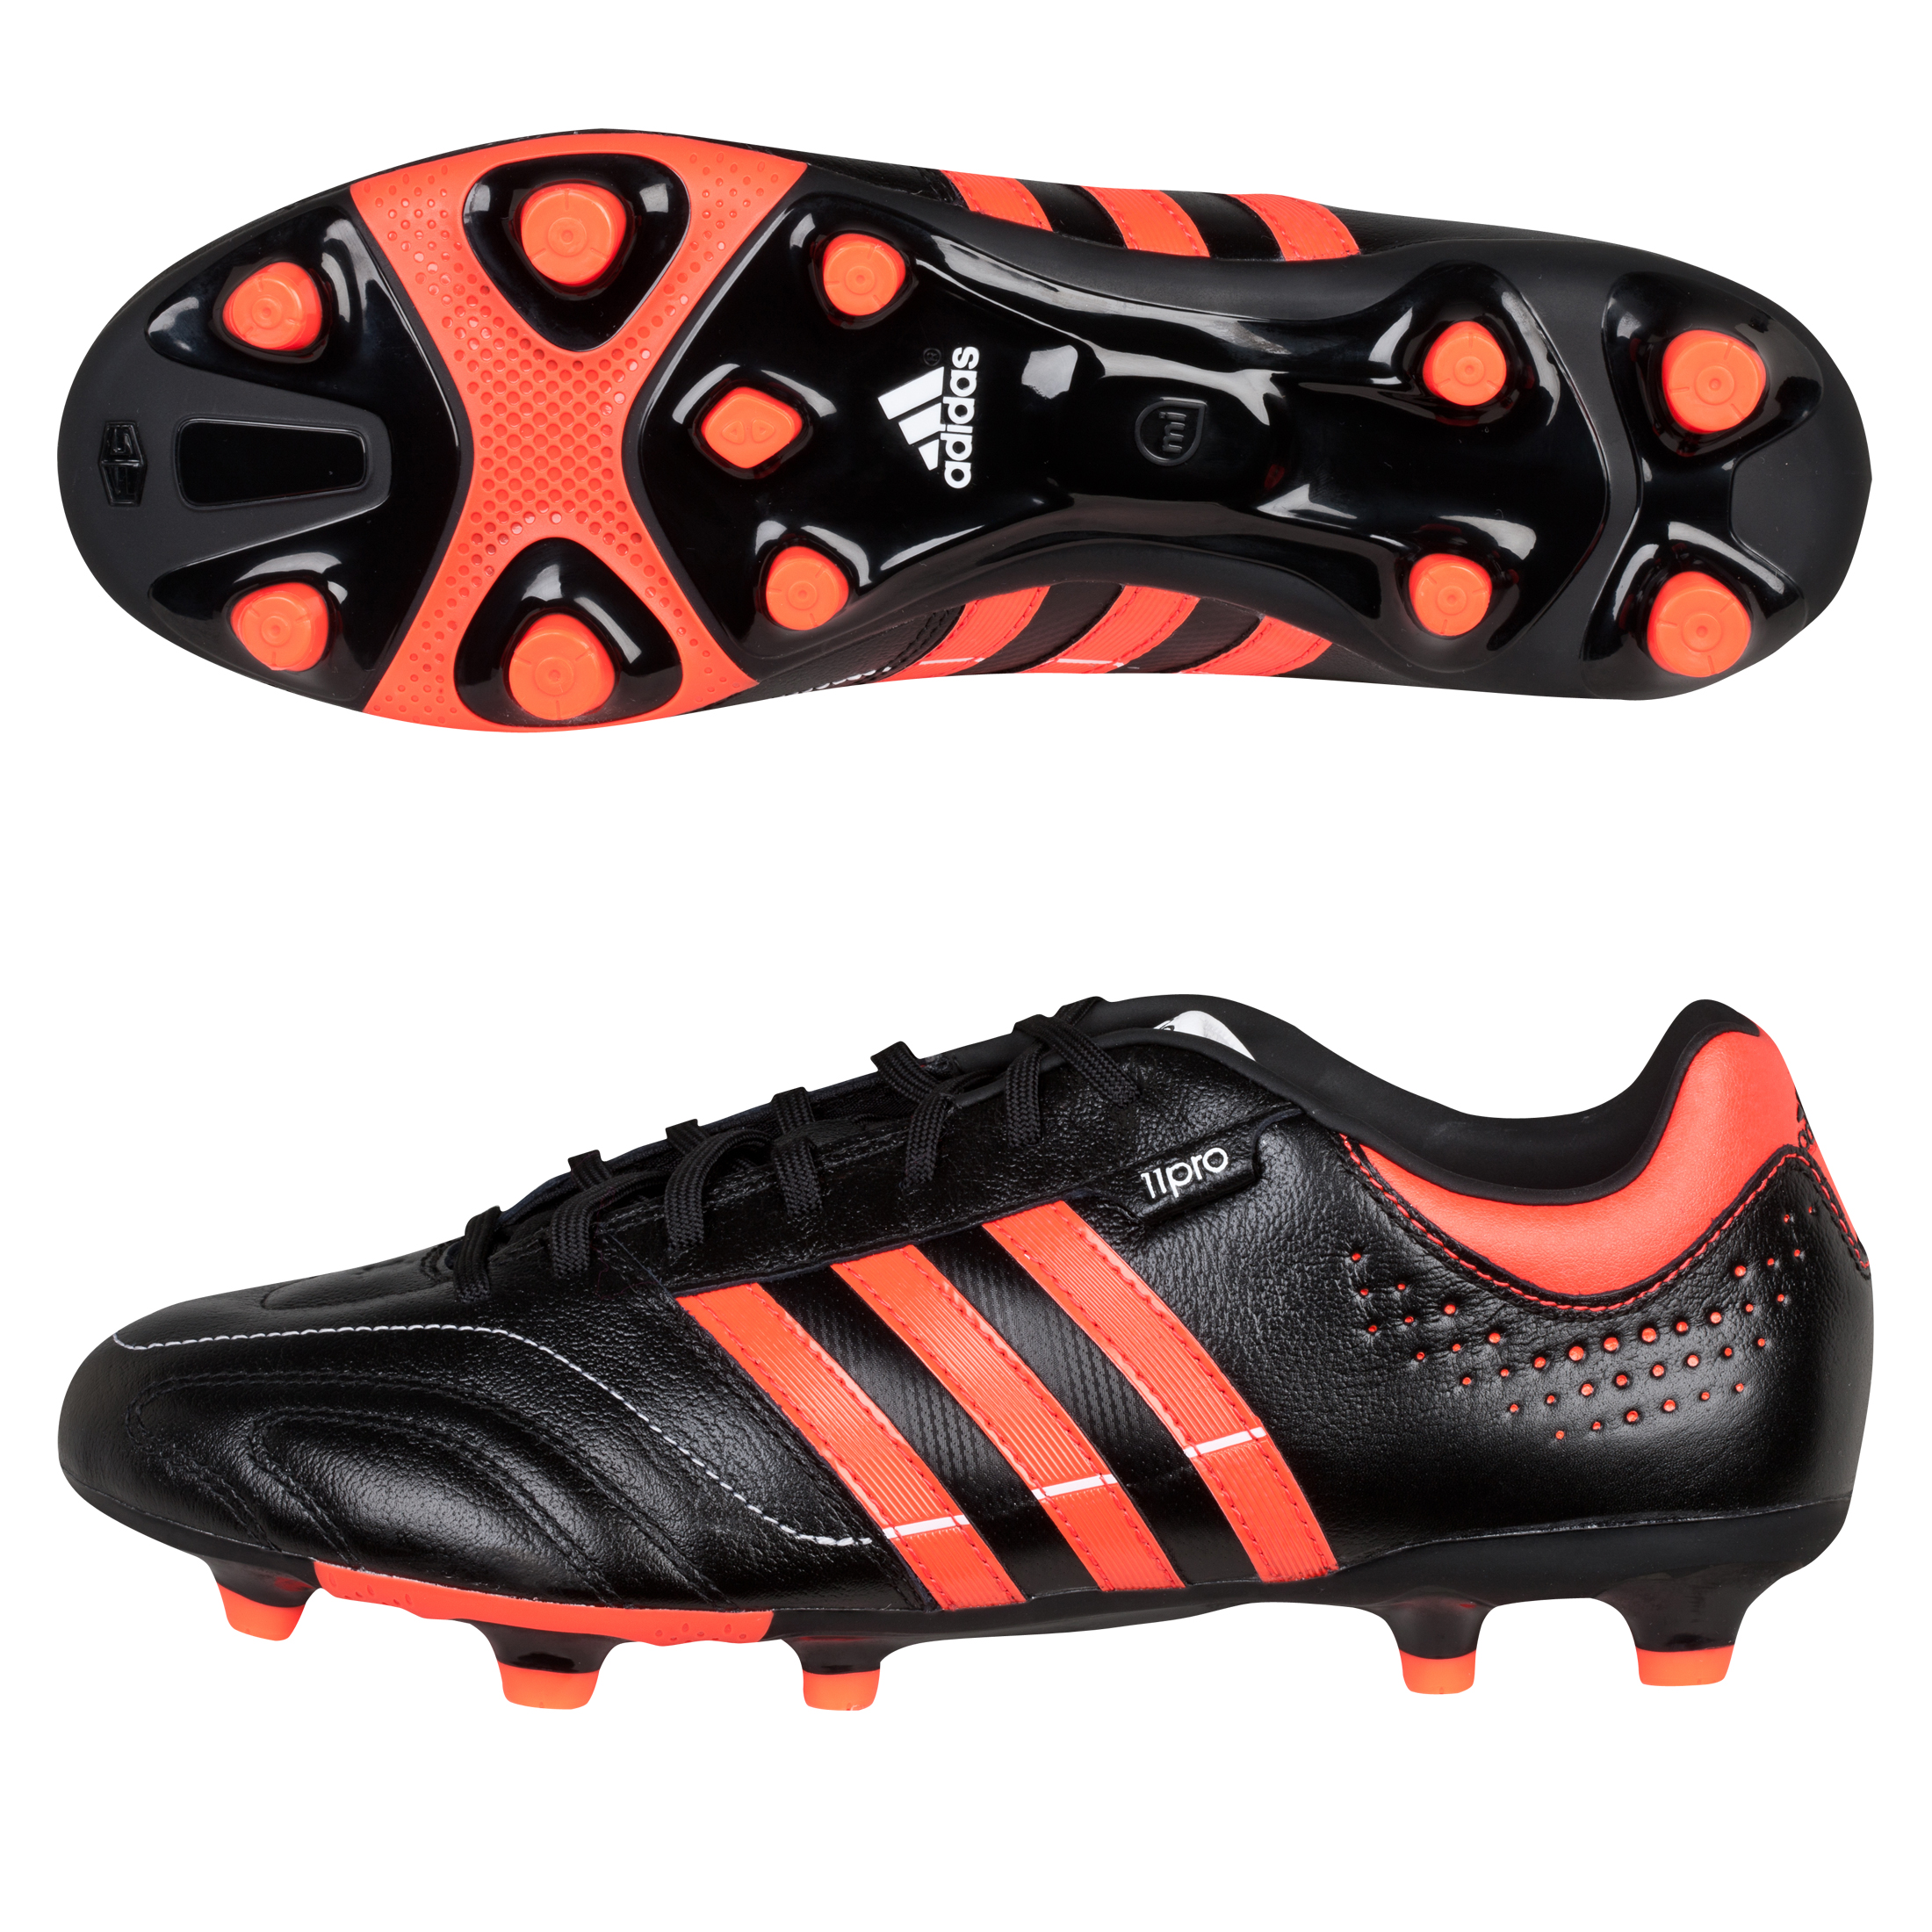 Adidas 11Nova TRX Firm Ground Football Boots - Black/Infrared/White